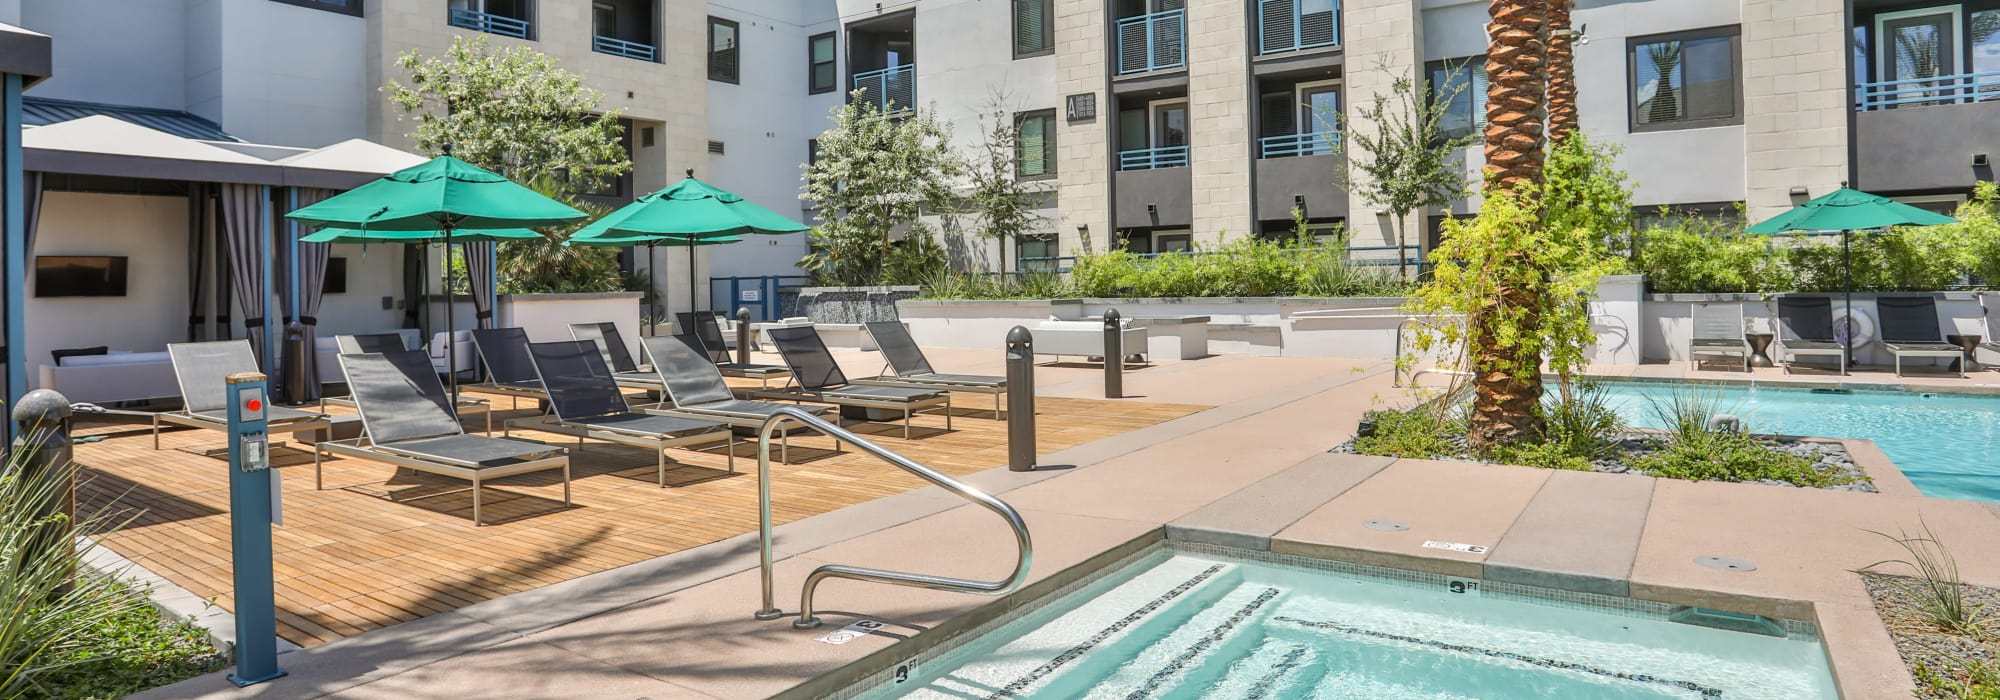 Resort-style hot tub and swimming pool at Lakeside Drive Apartments in Tempe, Arizona